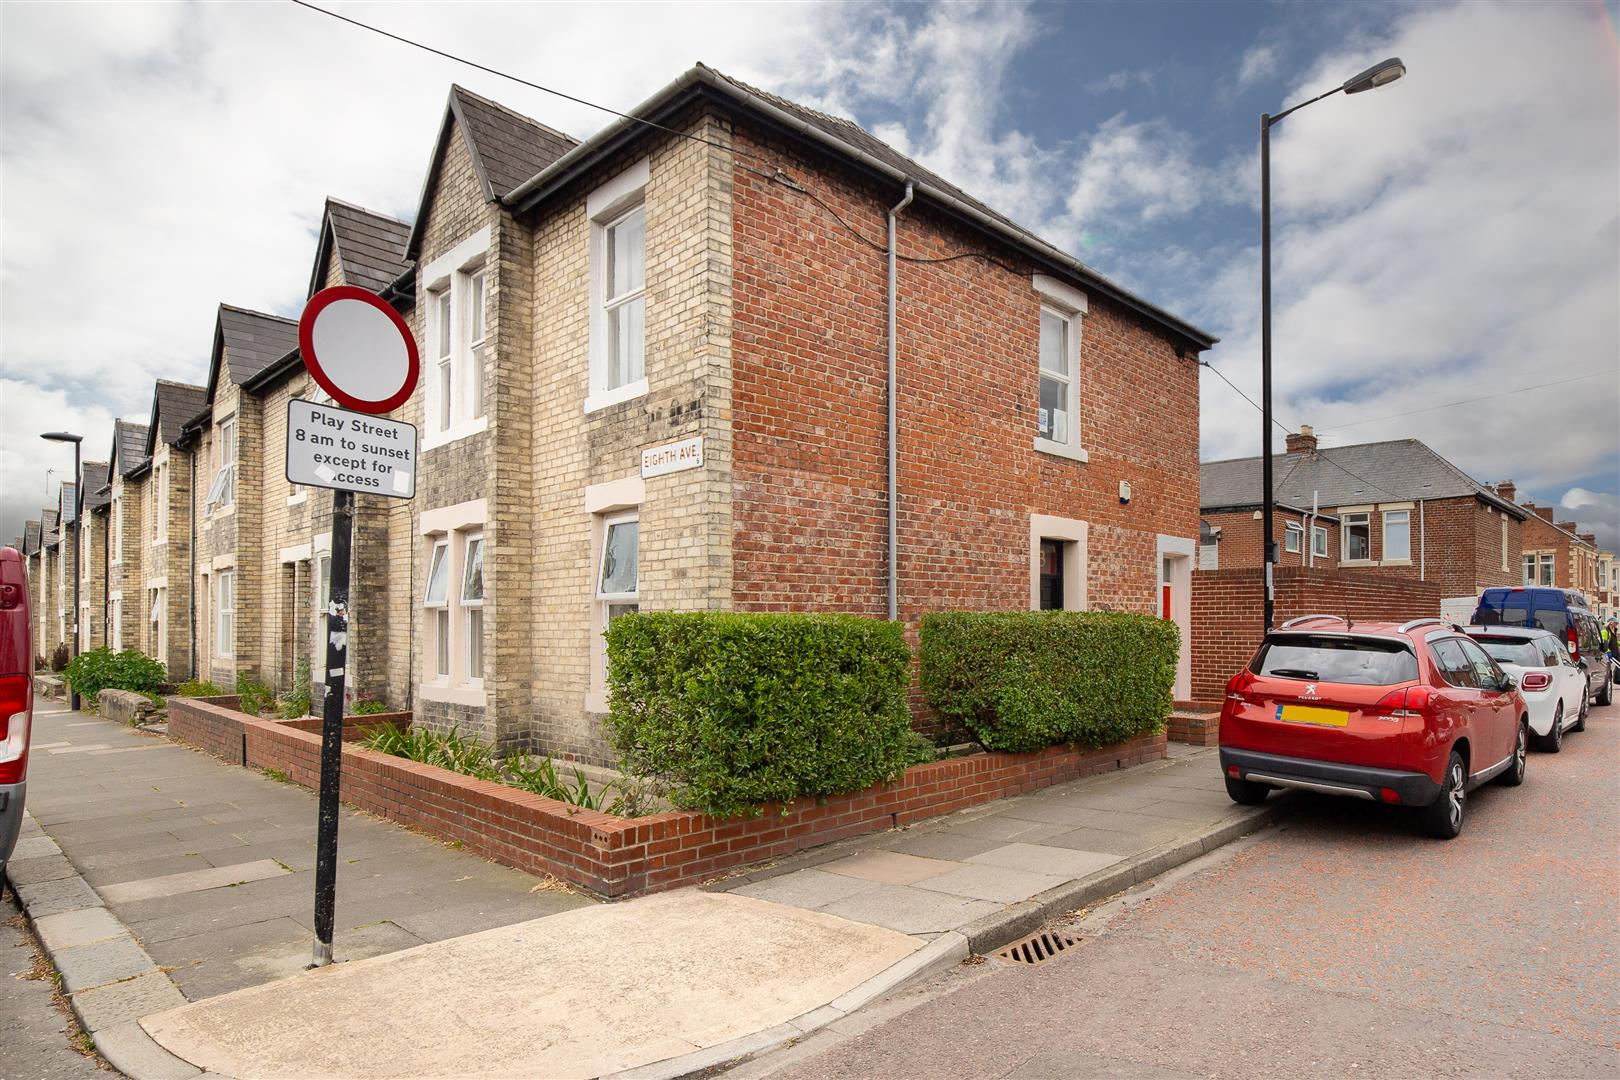 2 bed flat for sale in Newcastle Upon Tyne, NE6 5XS - Property Image 1